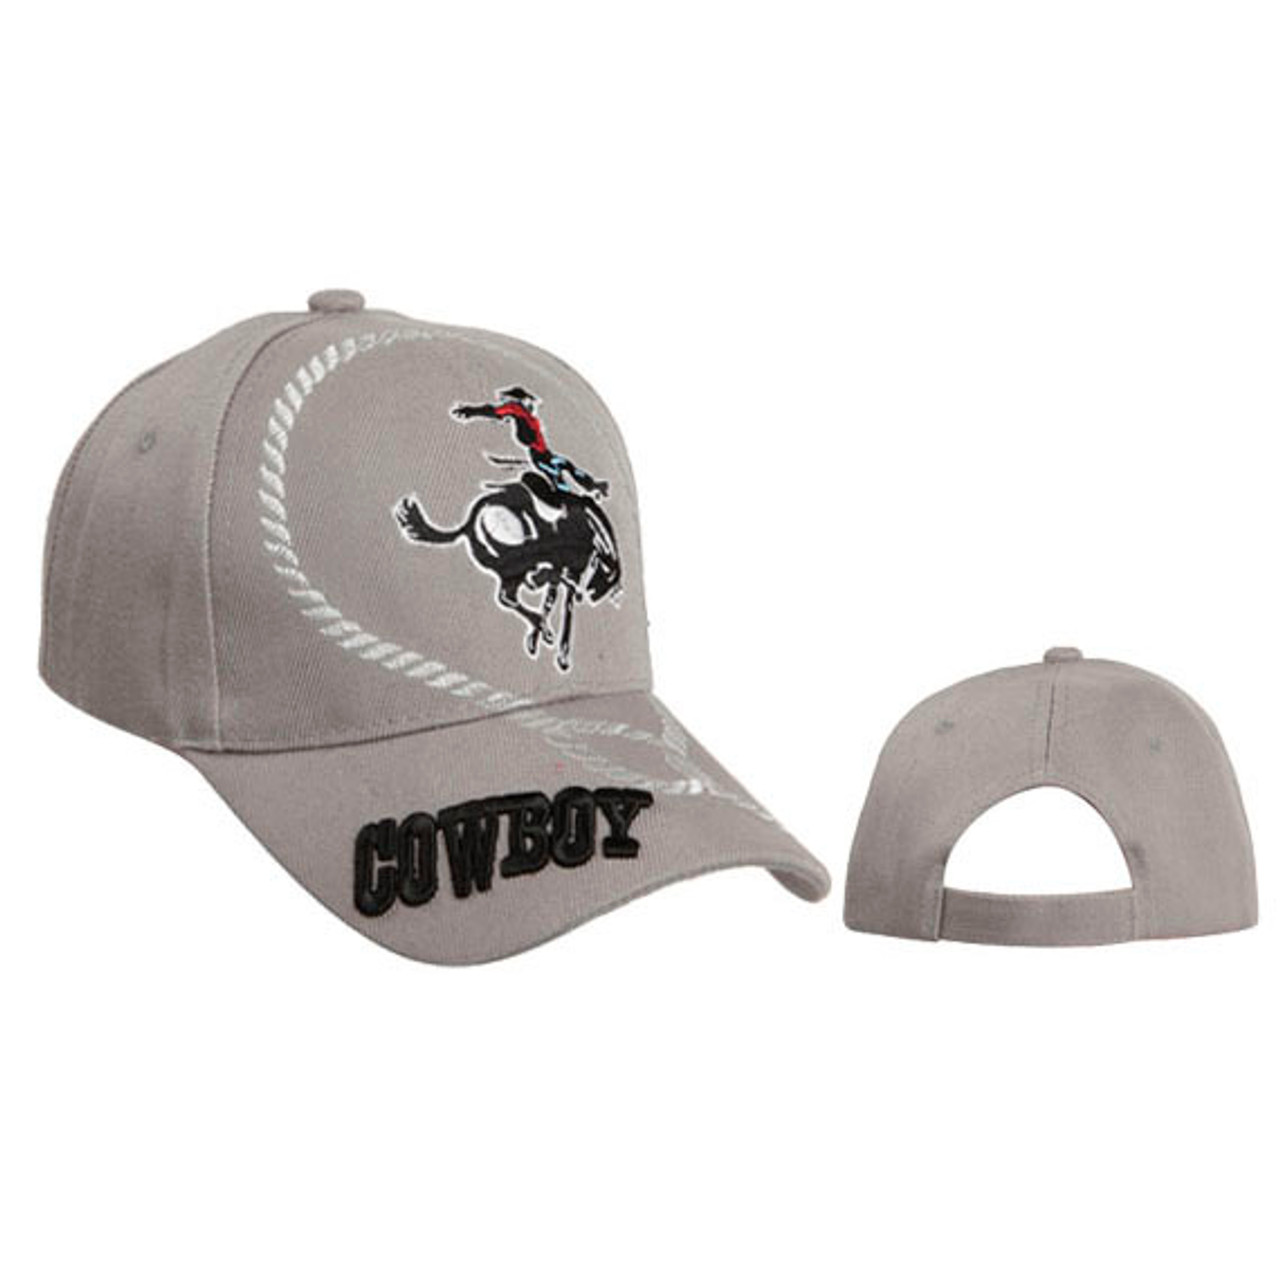 Grey Wholesale Cowboy Baseball Cap